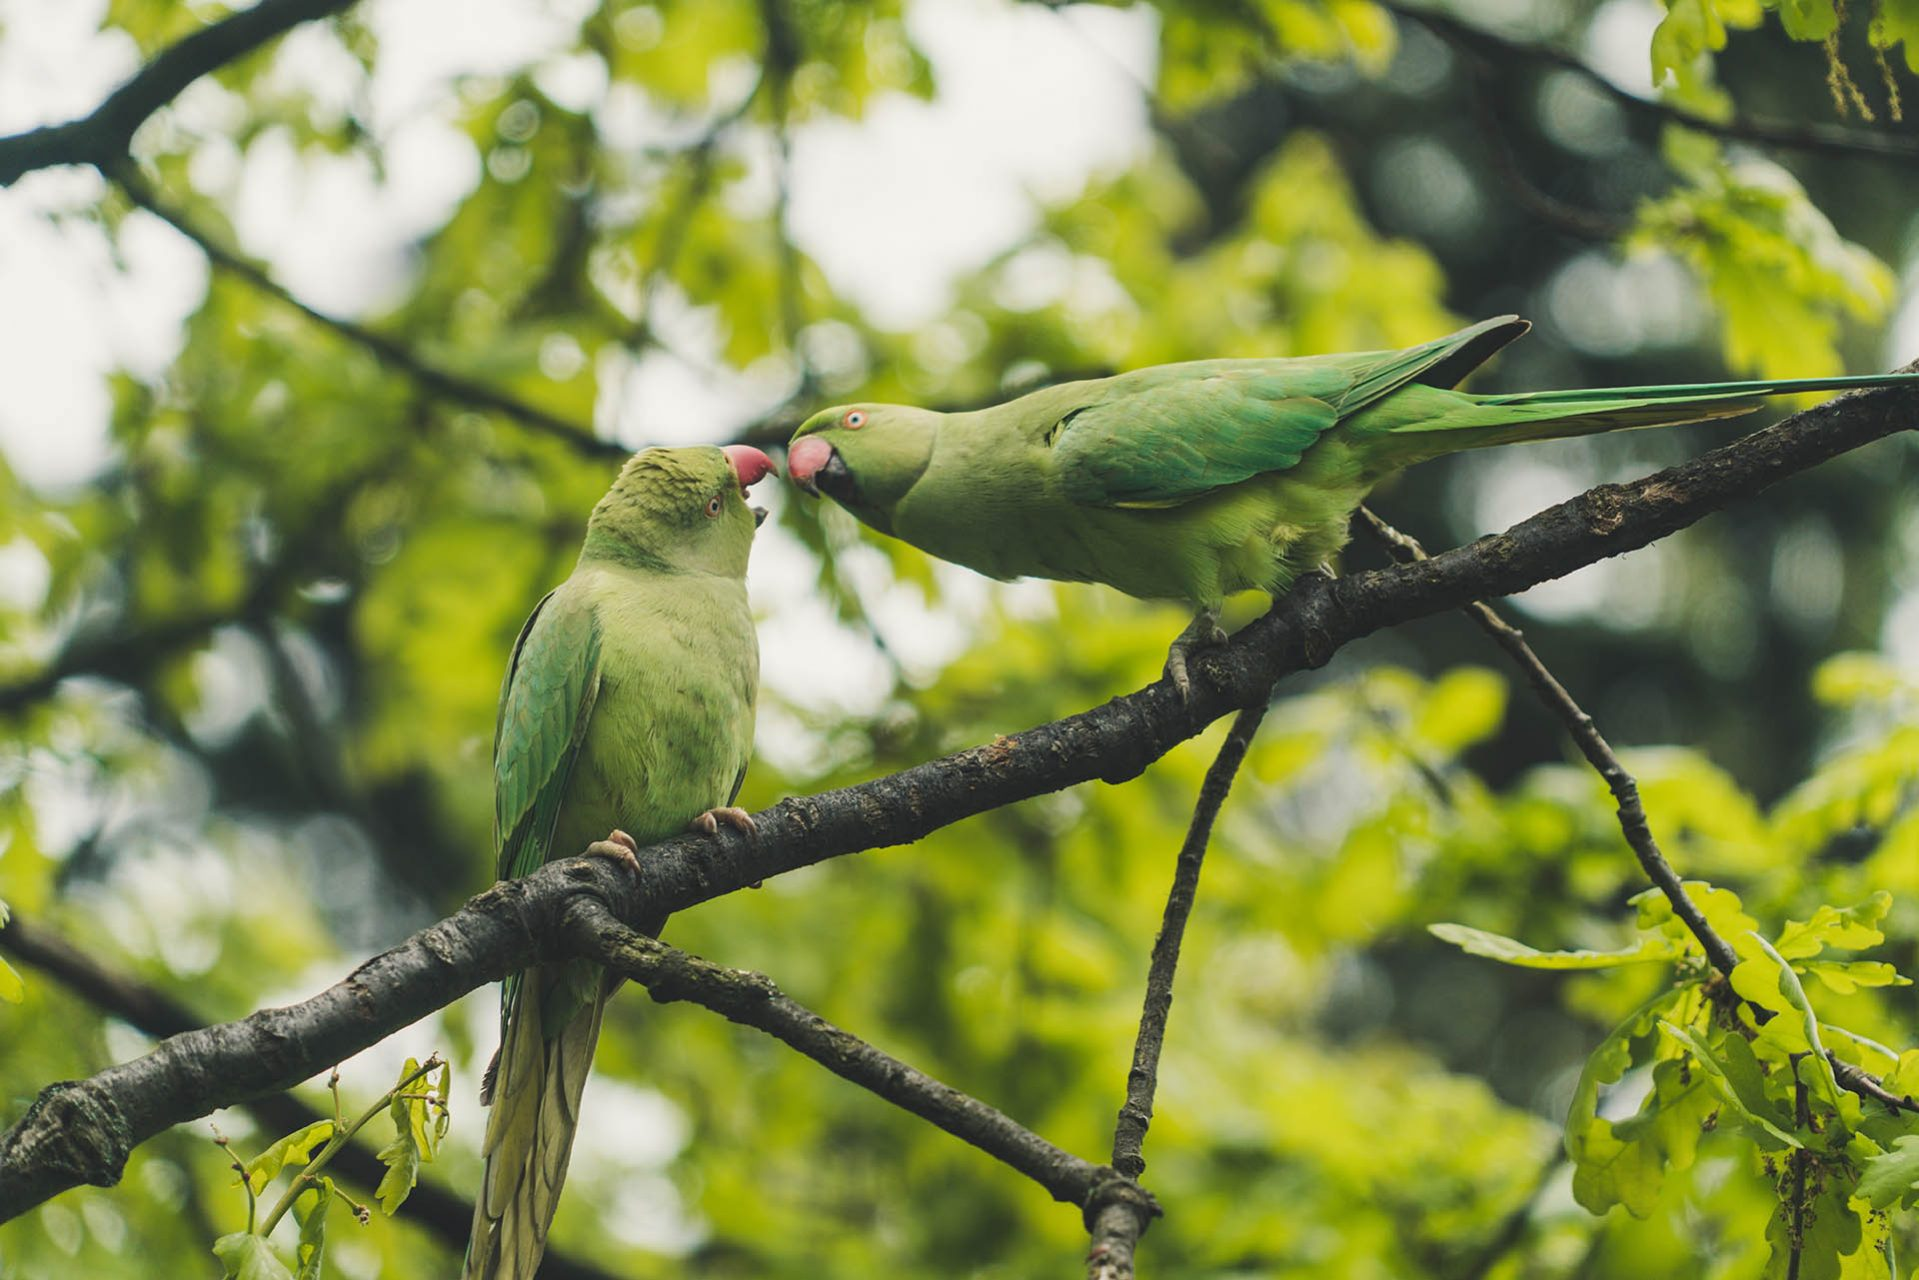 Two parrots in the trees